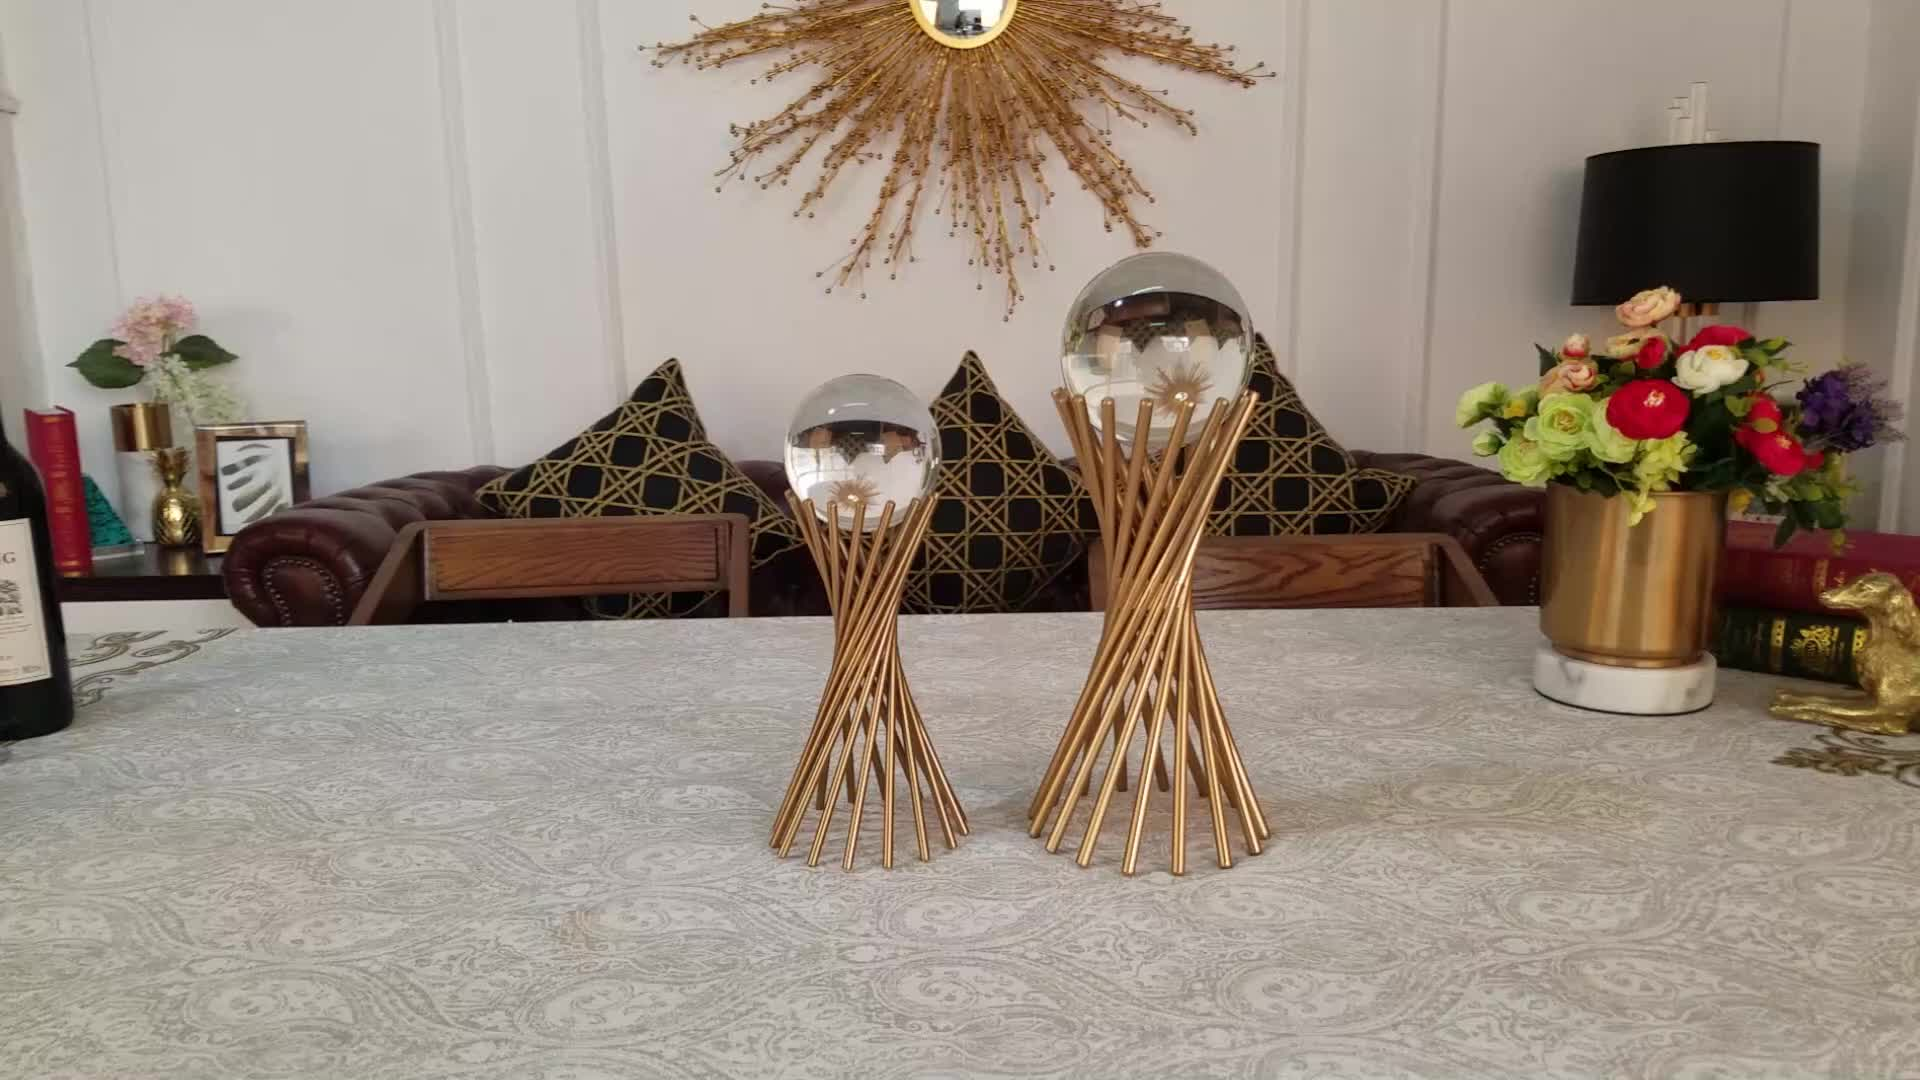 Graphic designing crystal ball on stand fancy home decor or wedding souvenir